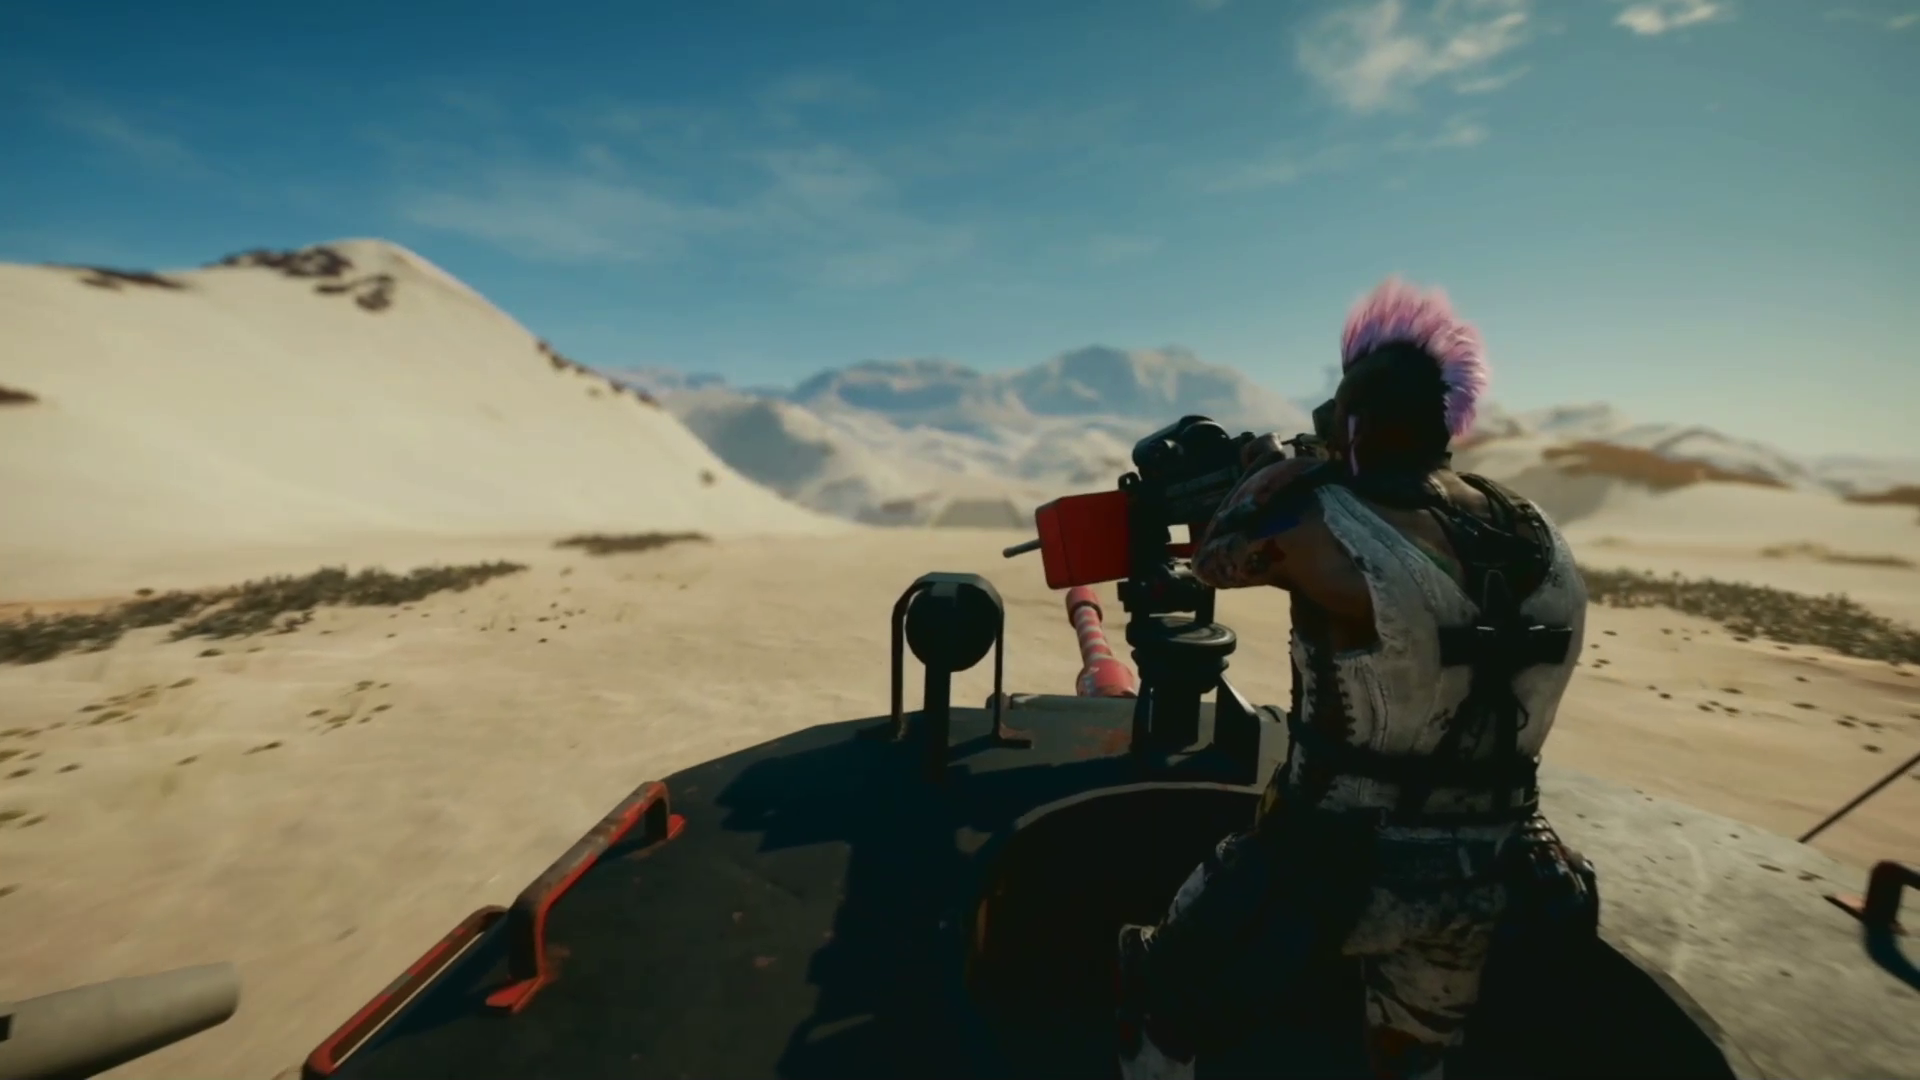 Rage 2 gameplay showed off in extensive QuakeCon trailer - Polygon